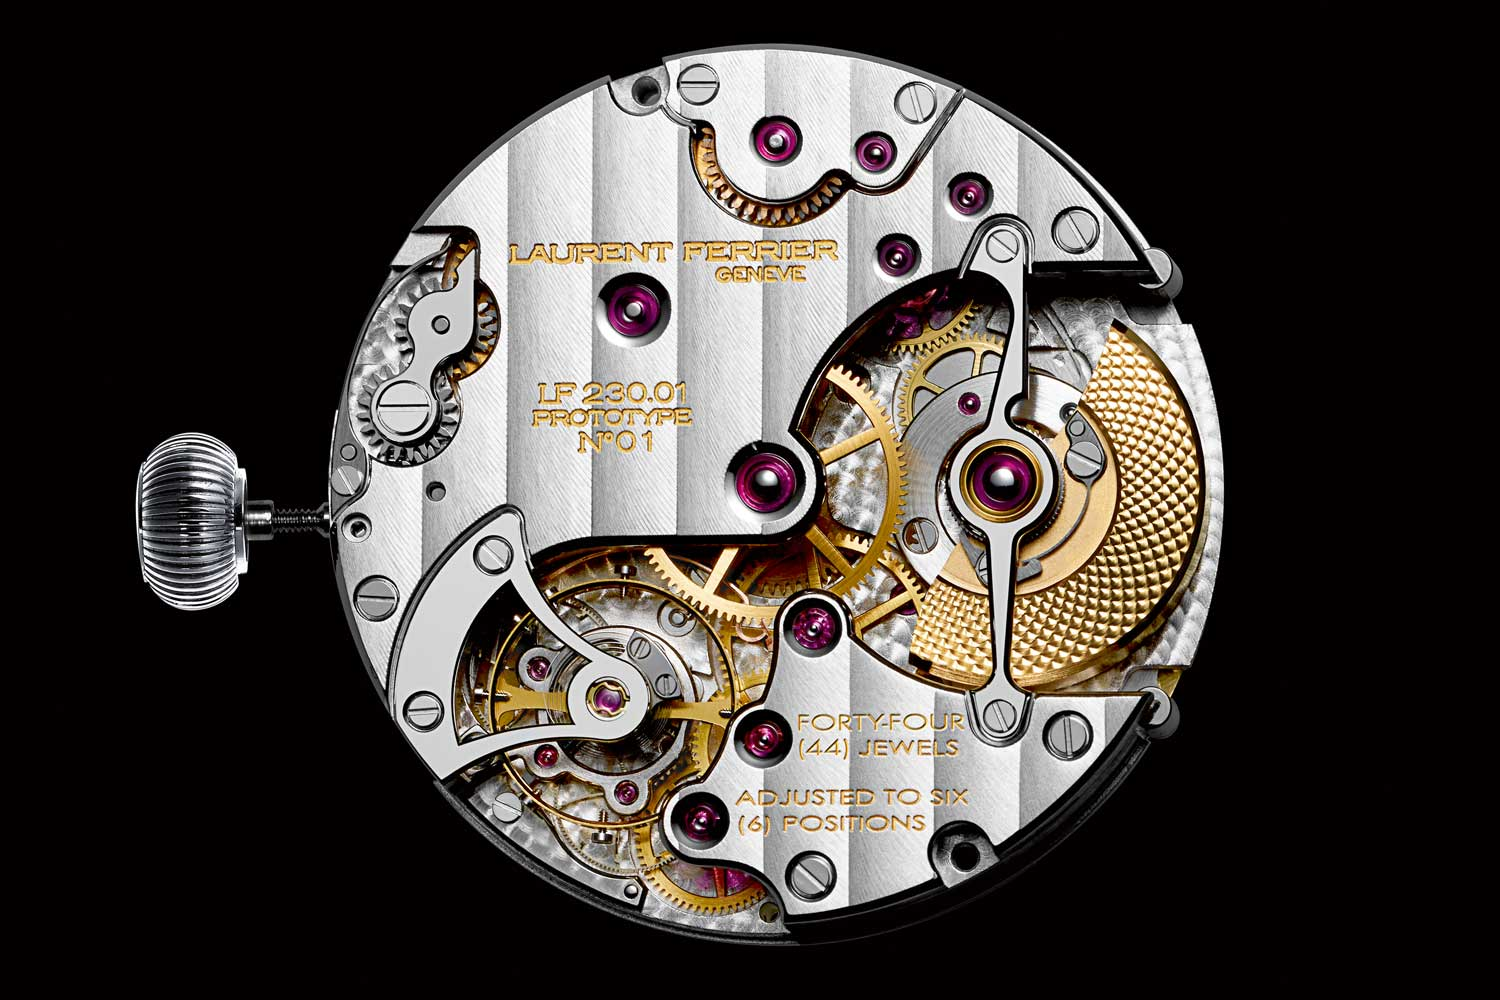 The additional mechanism to display the home and local time is integrated into the baseplate of the movement.